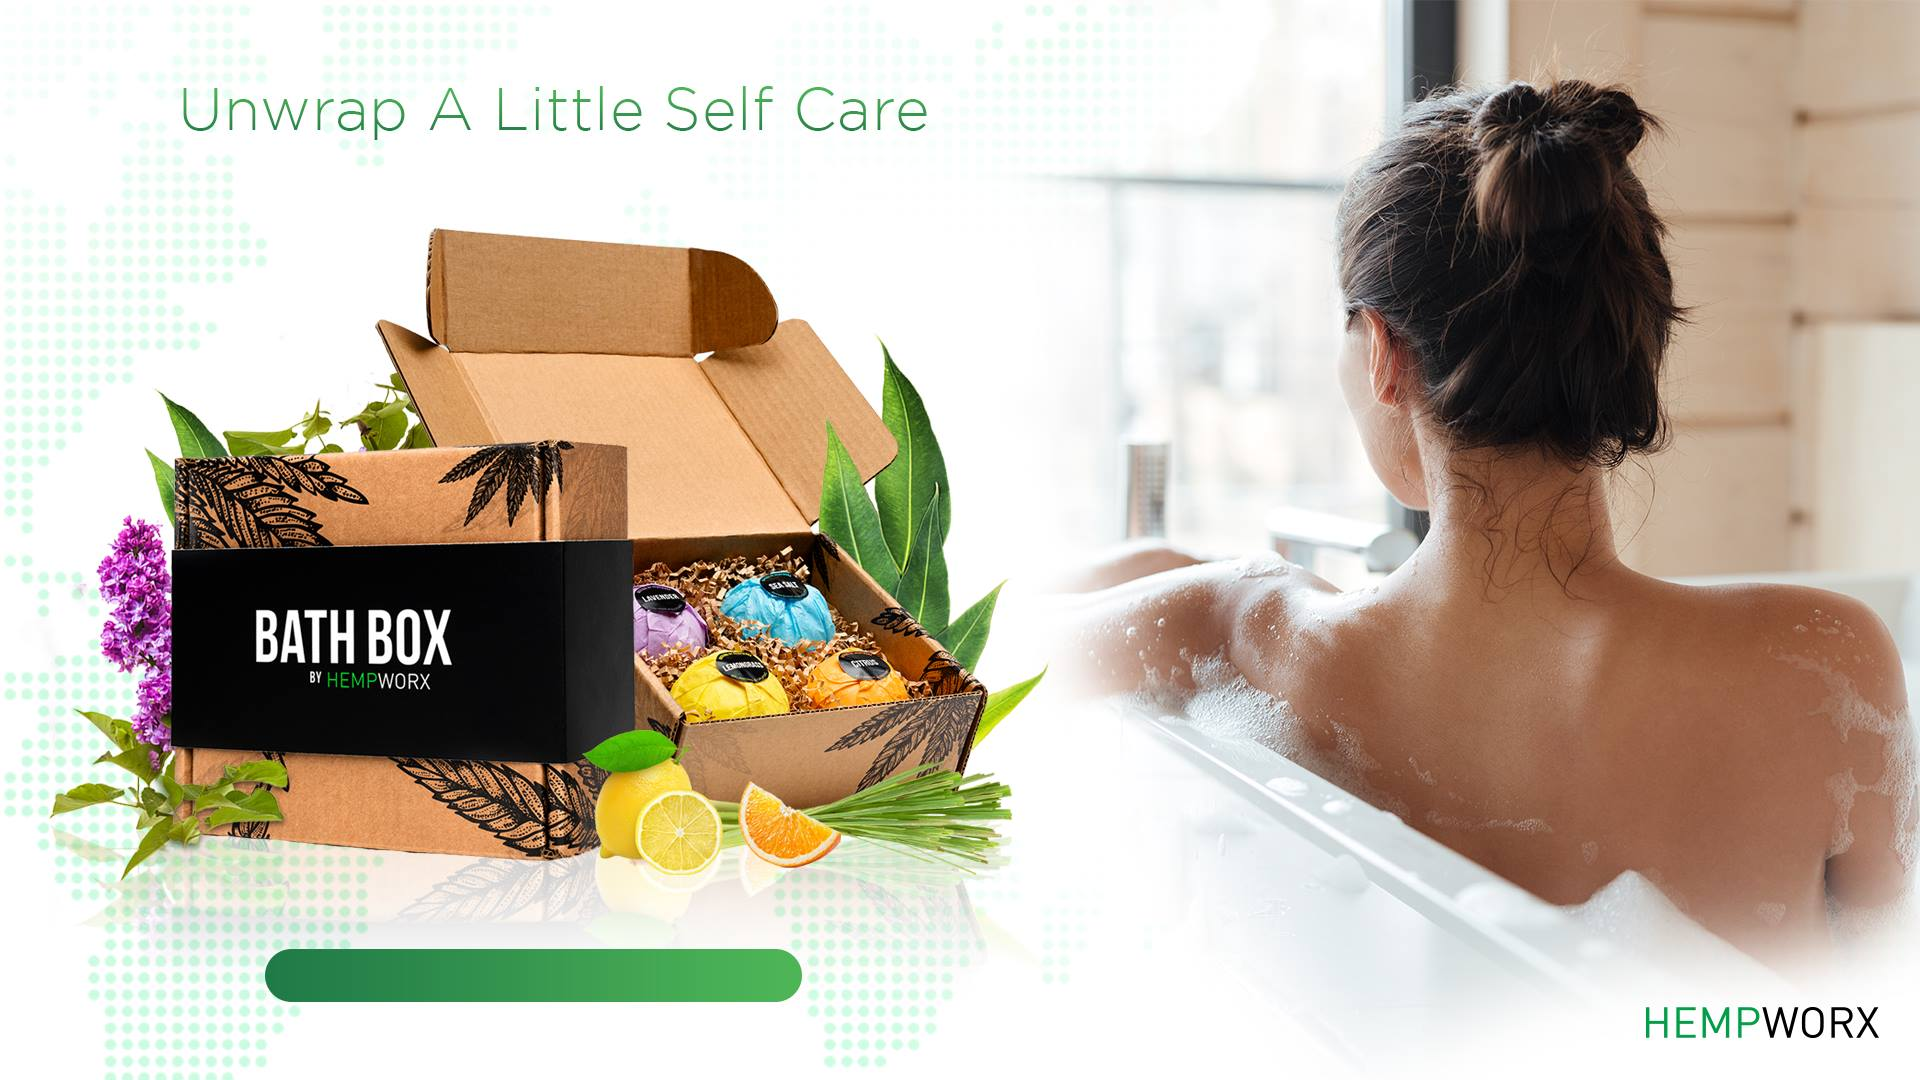 bathbox by hempworx